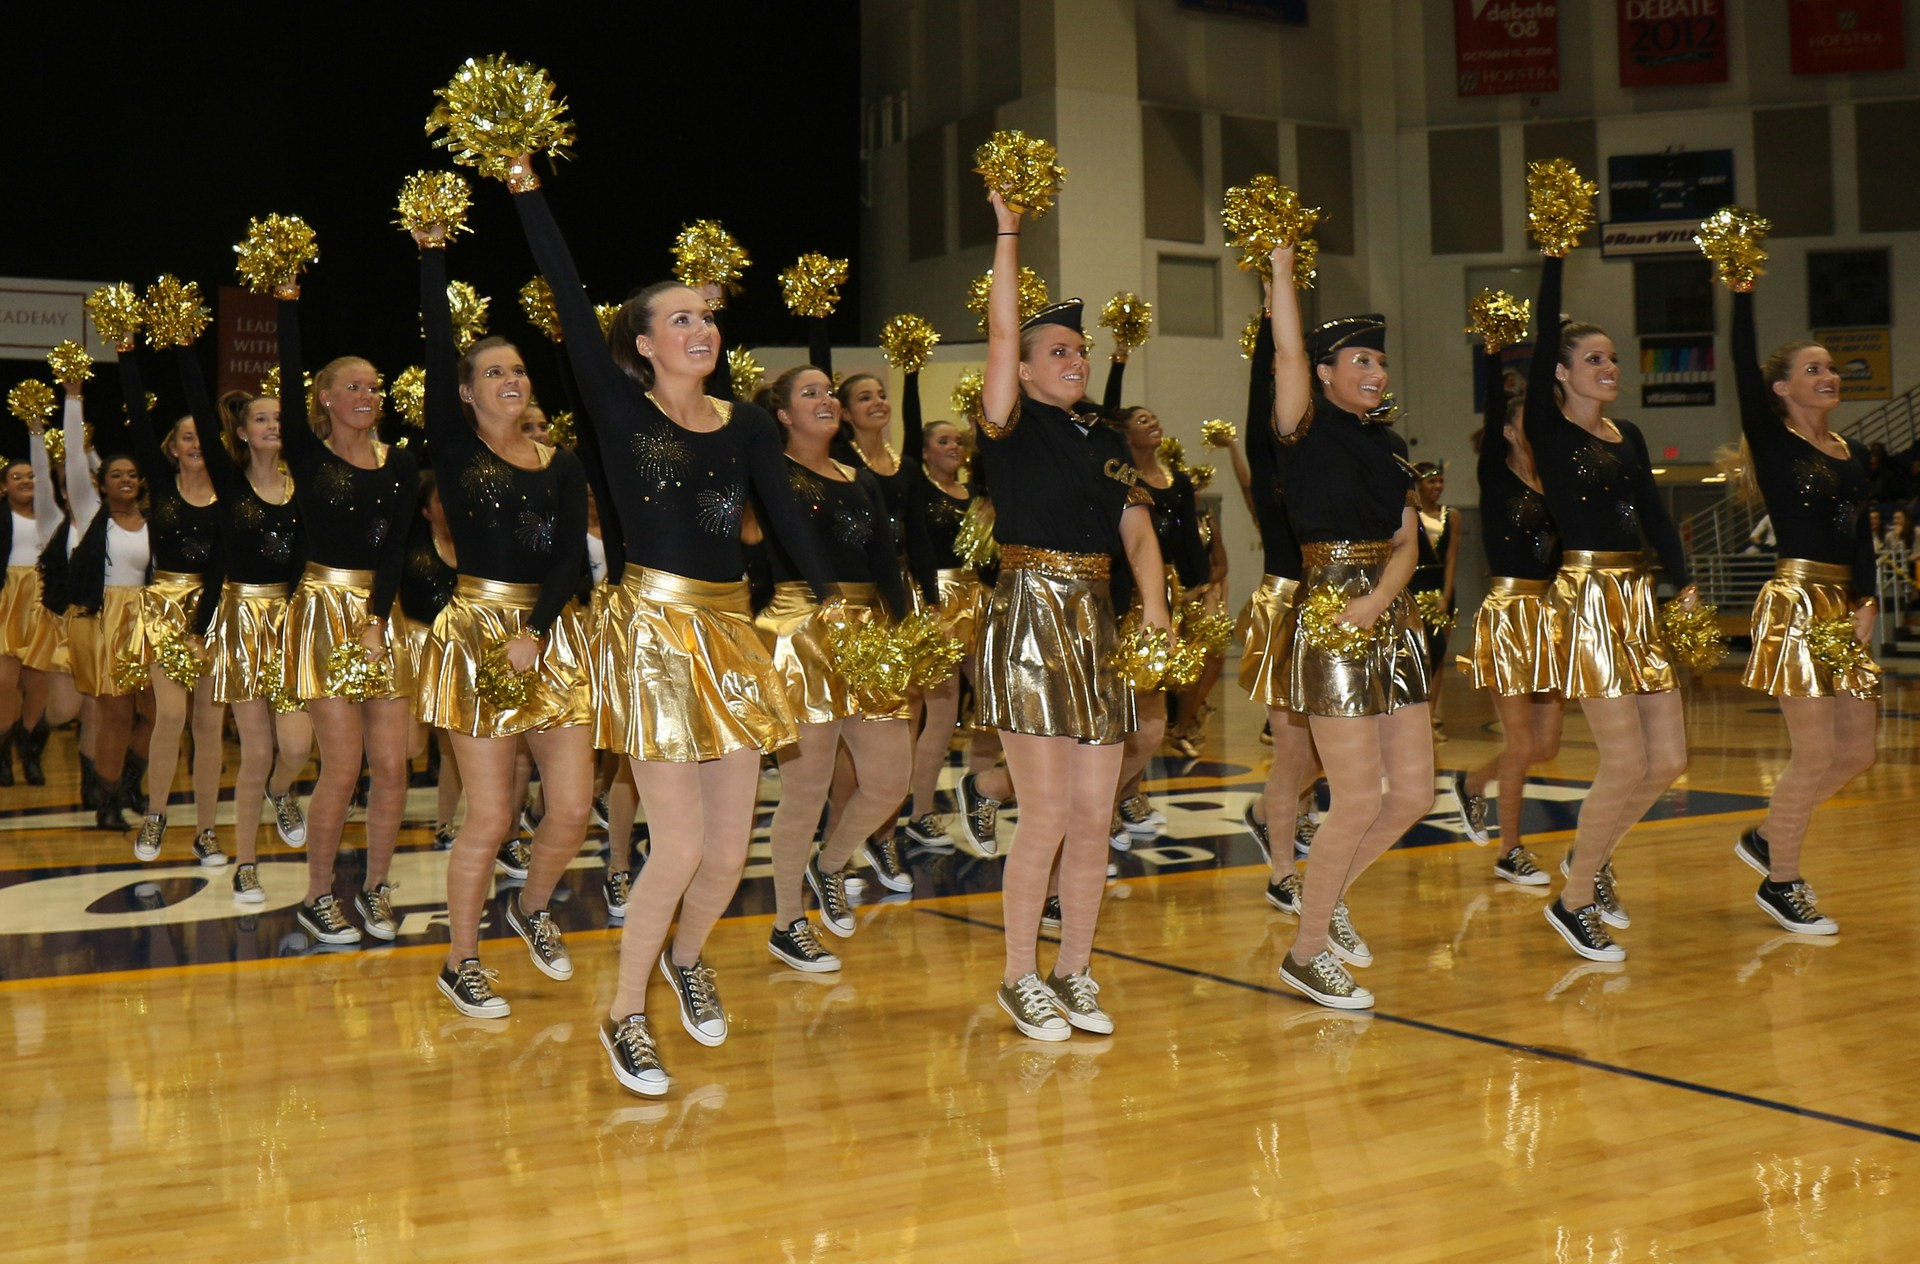 Gold Team Cheer performance